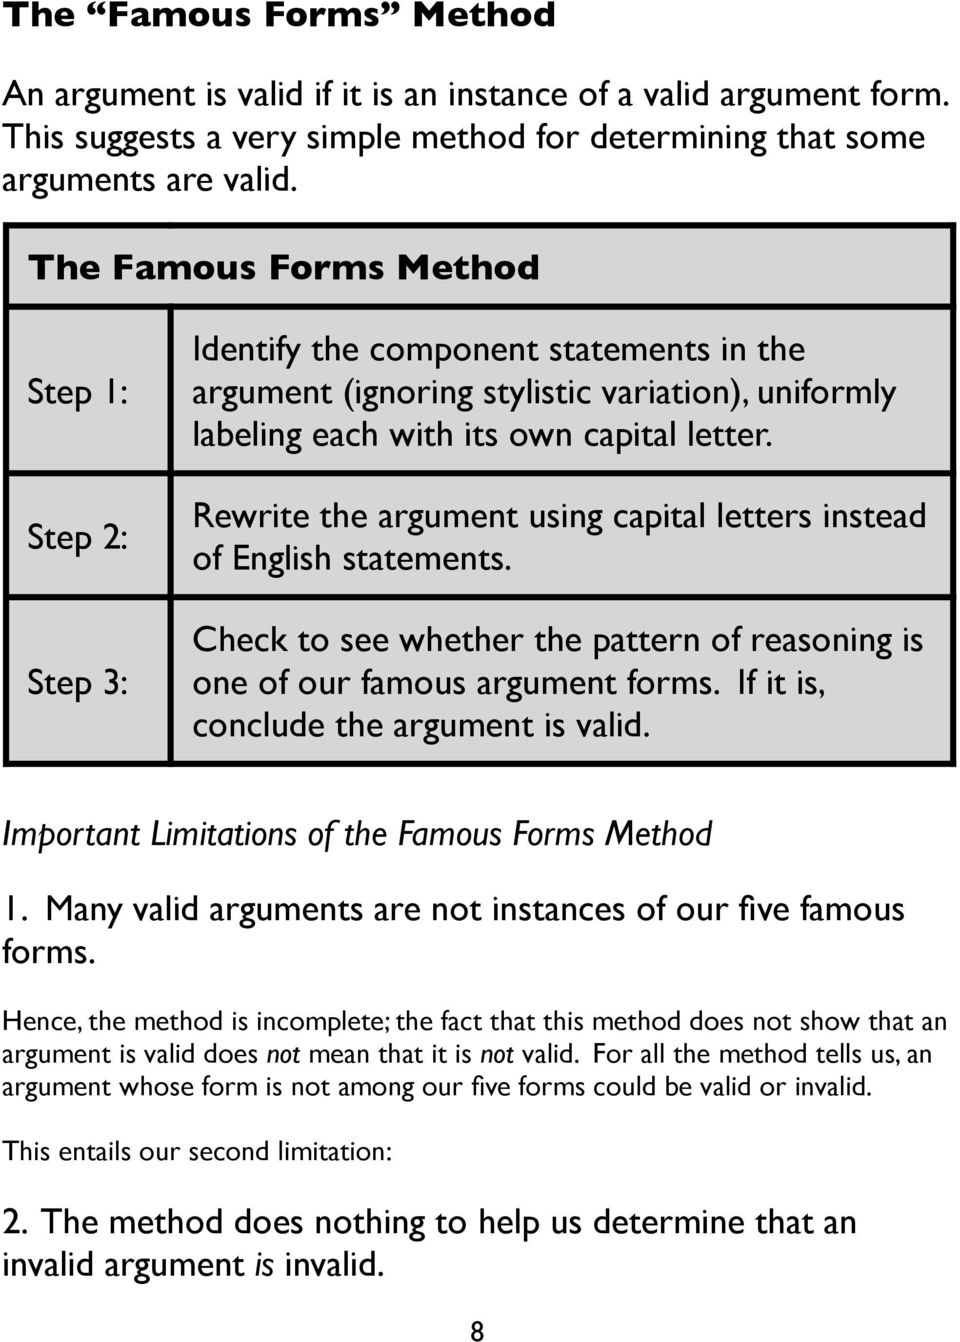 Rewrite the argument using capital letters instead of English statements. Check to see whether the pattern of reasoning is one of our famous argument forms. If it is, conclude the argument is valid.